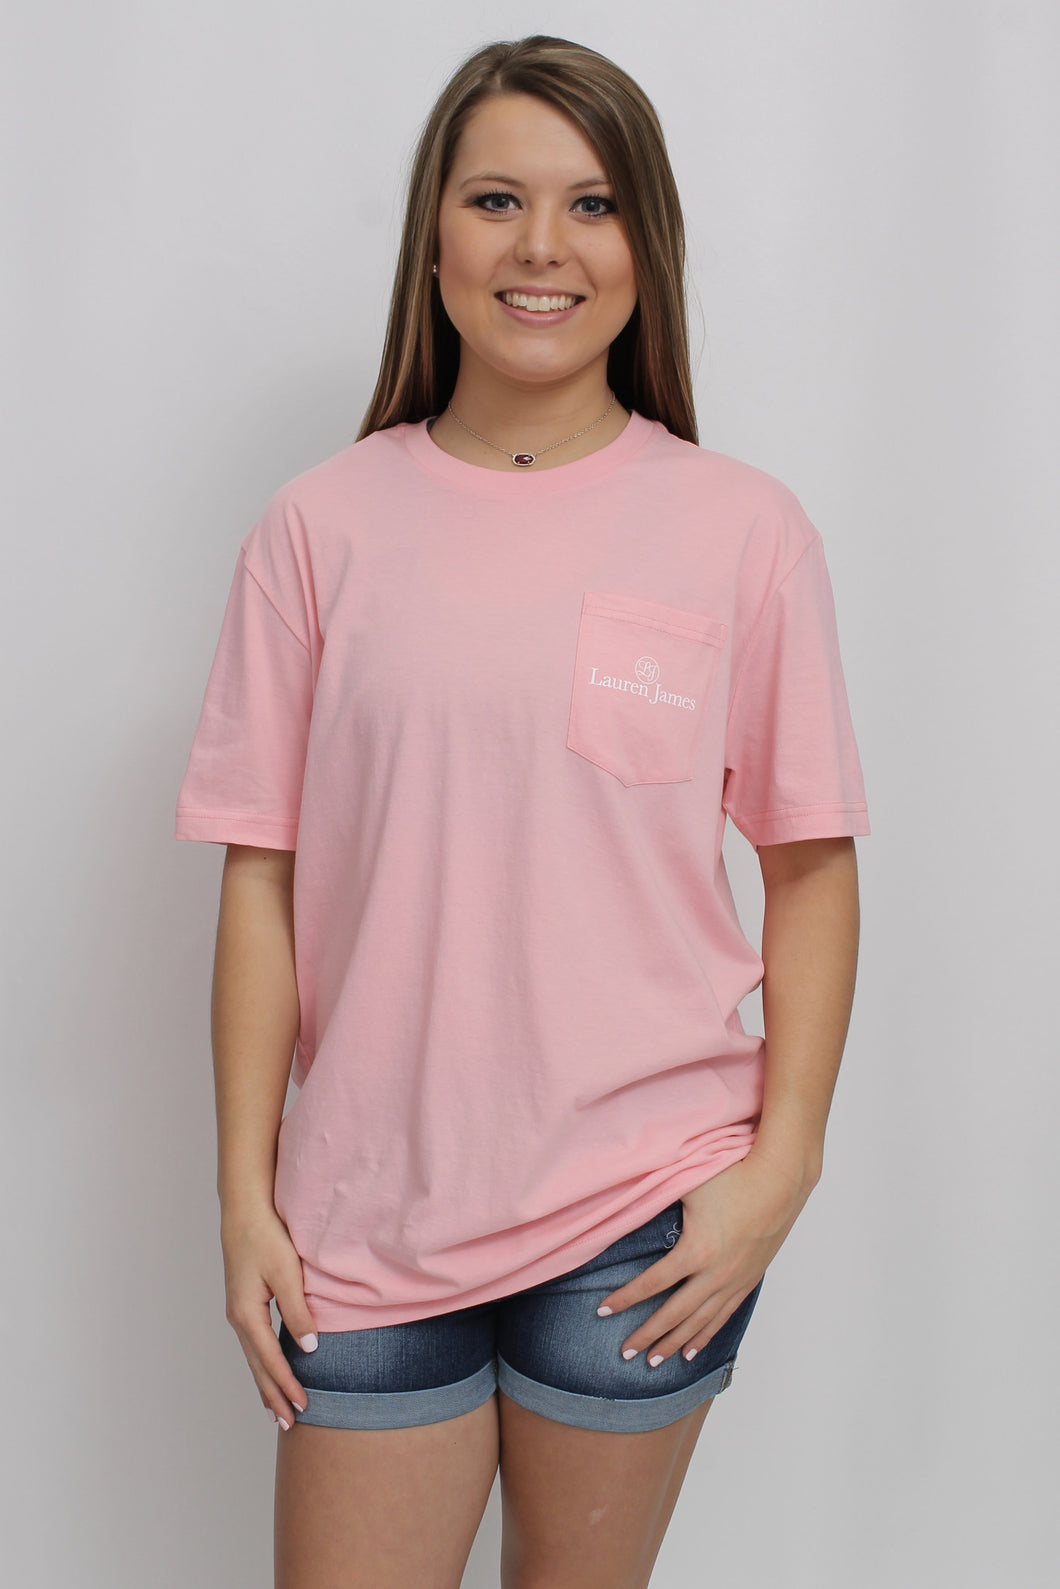 Cotton Candy Pink S/S- Lauren James Road Ends Short Sleeve Front